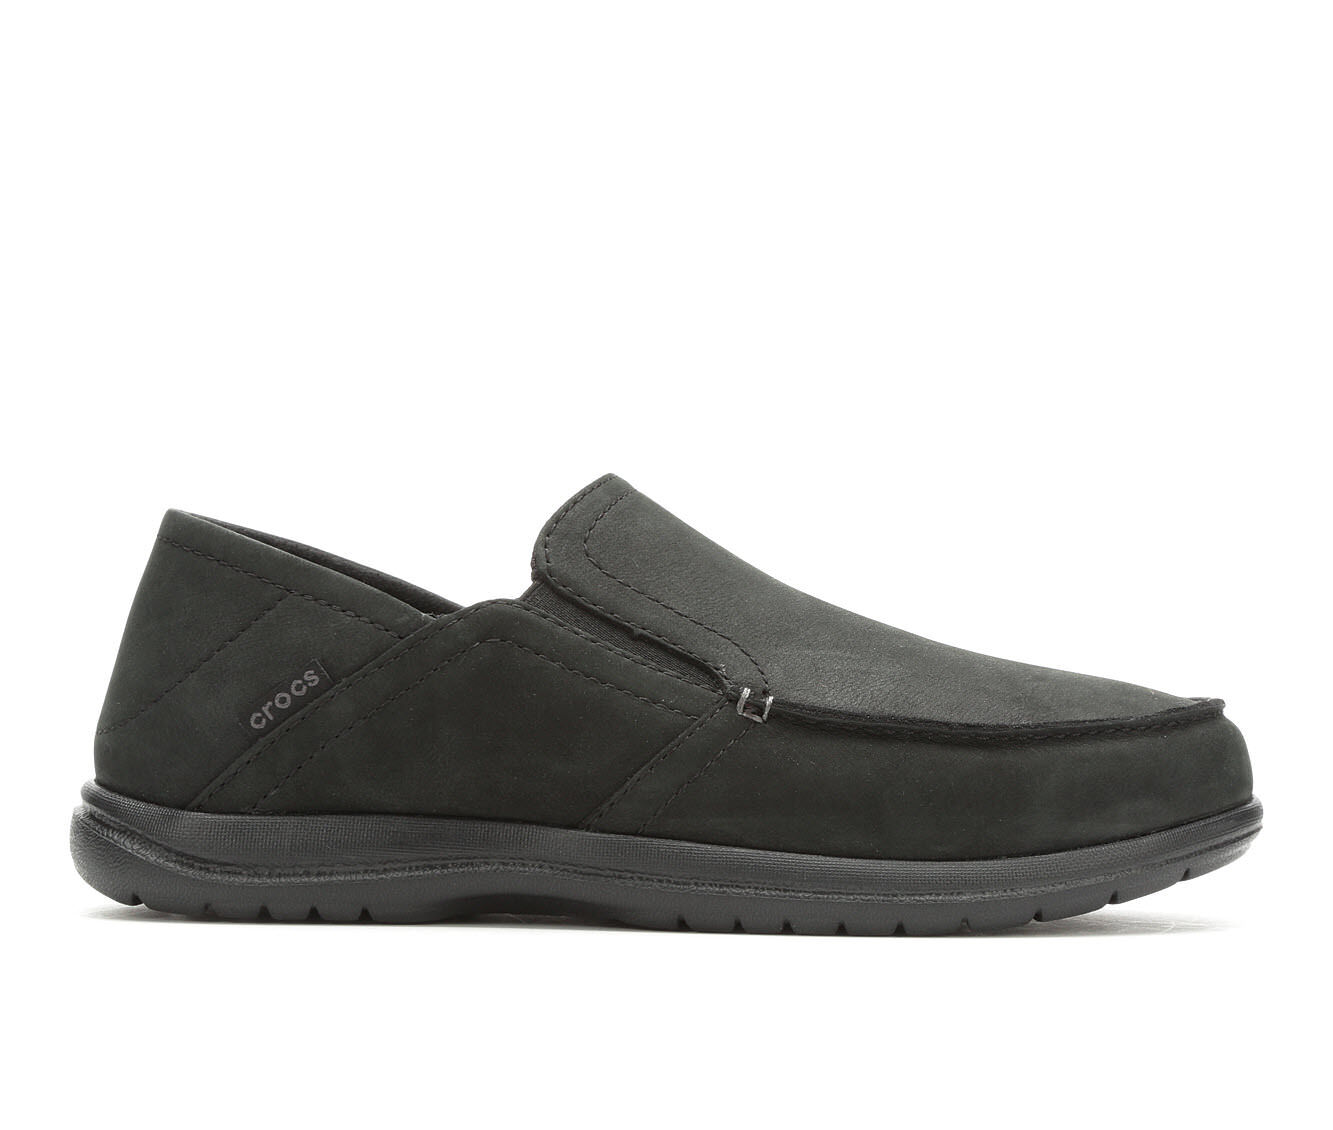 Men's Crocs Santa Cruz Convertible Leather Slip On Black